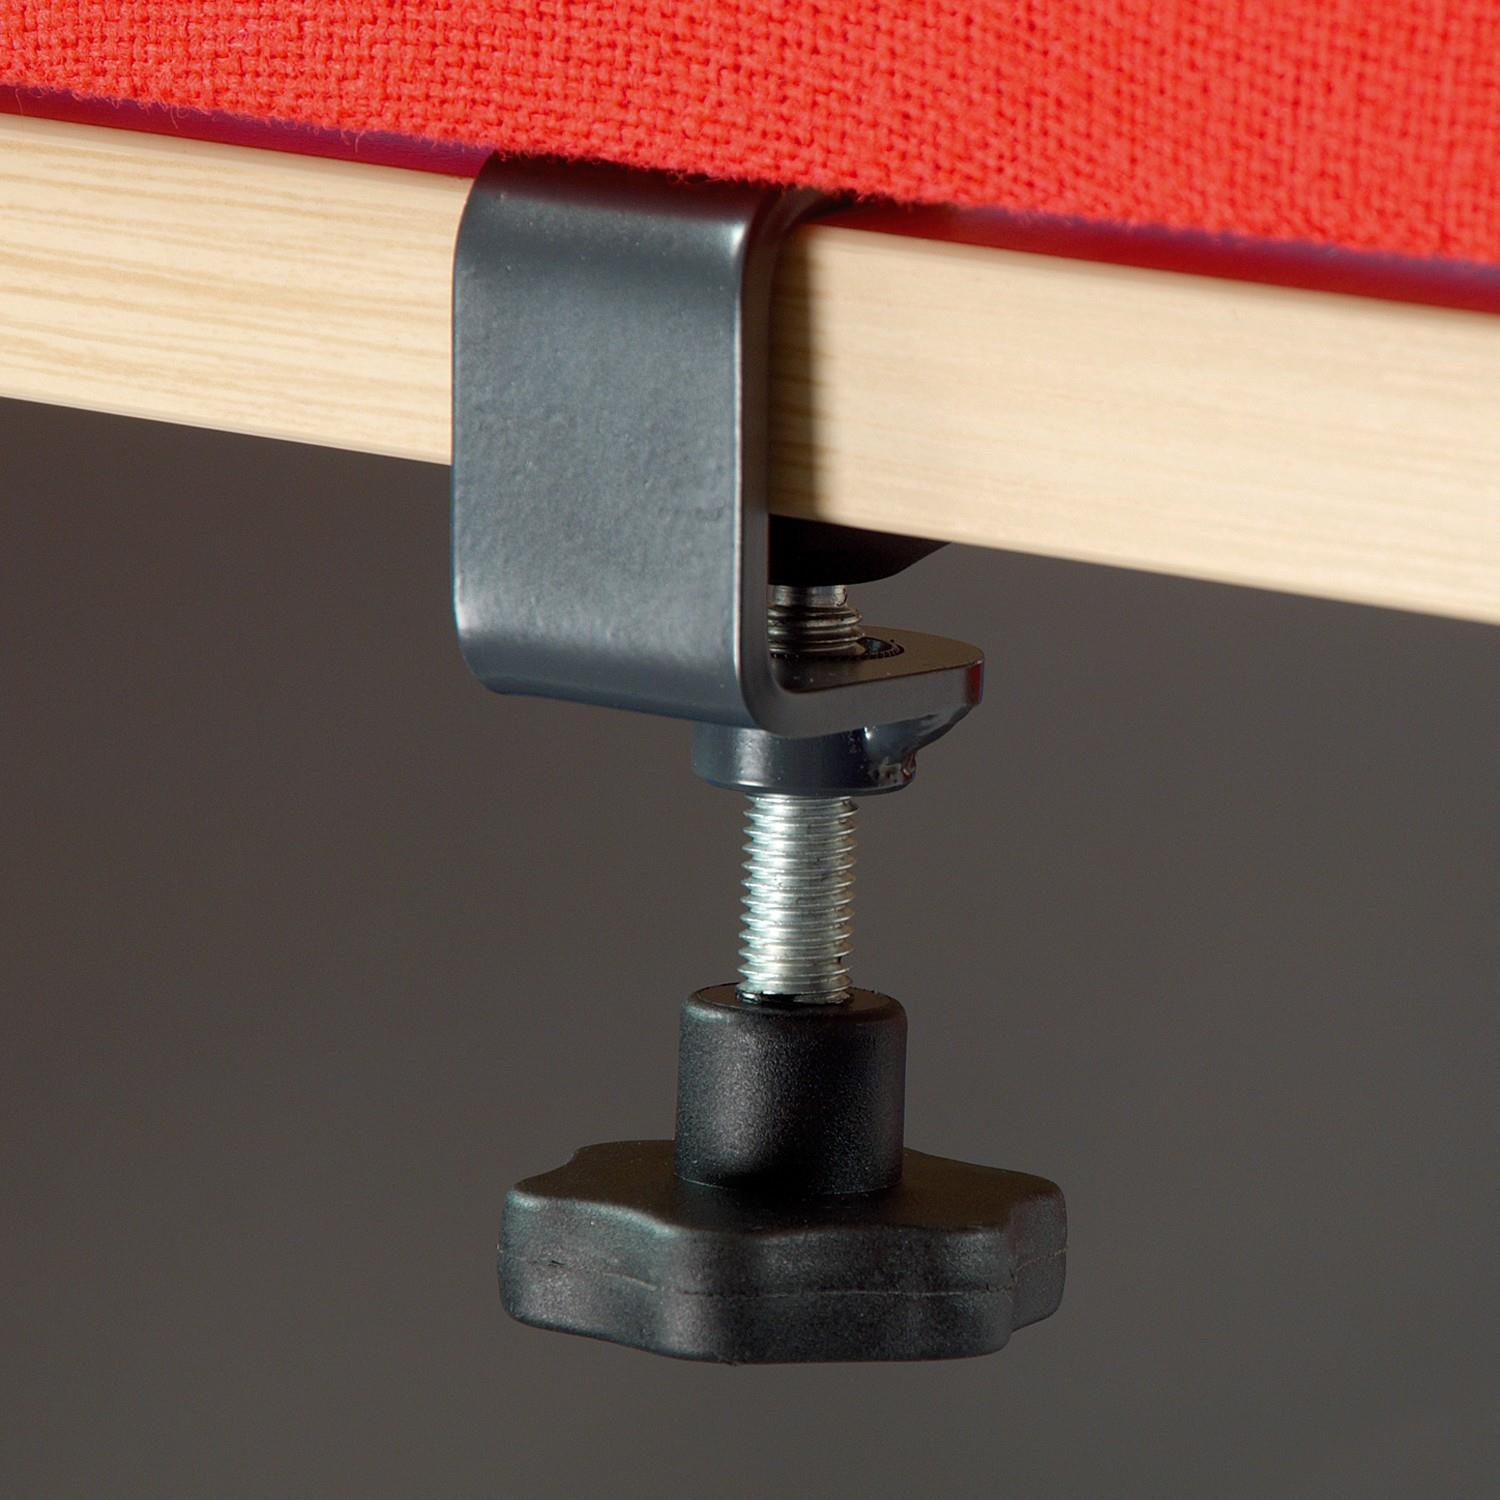 Busy Screen Desk Clamps